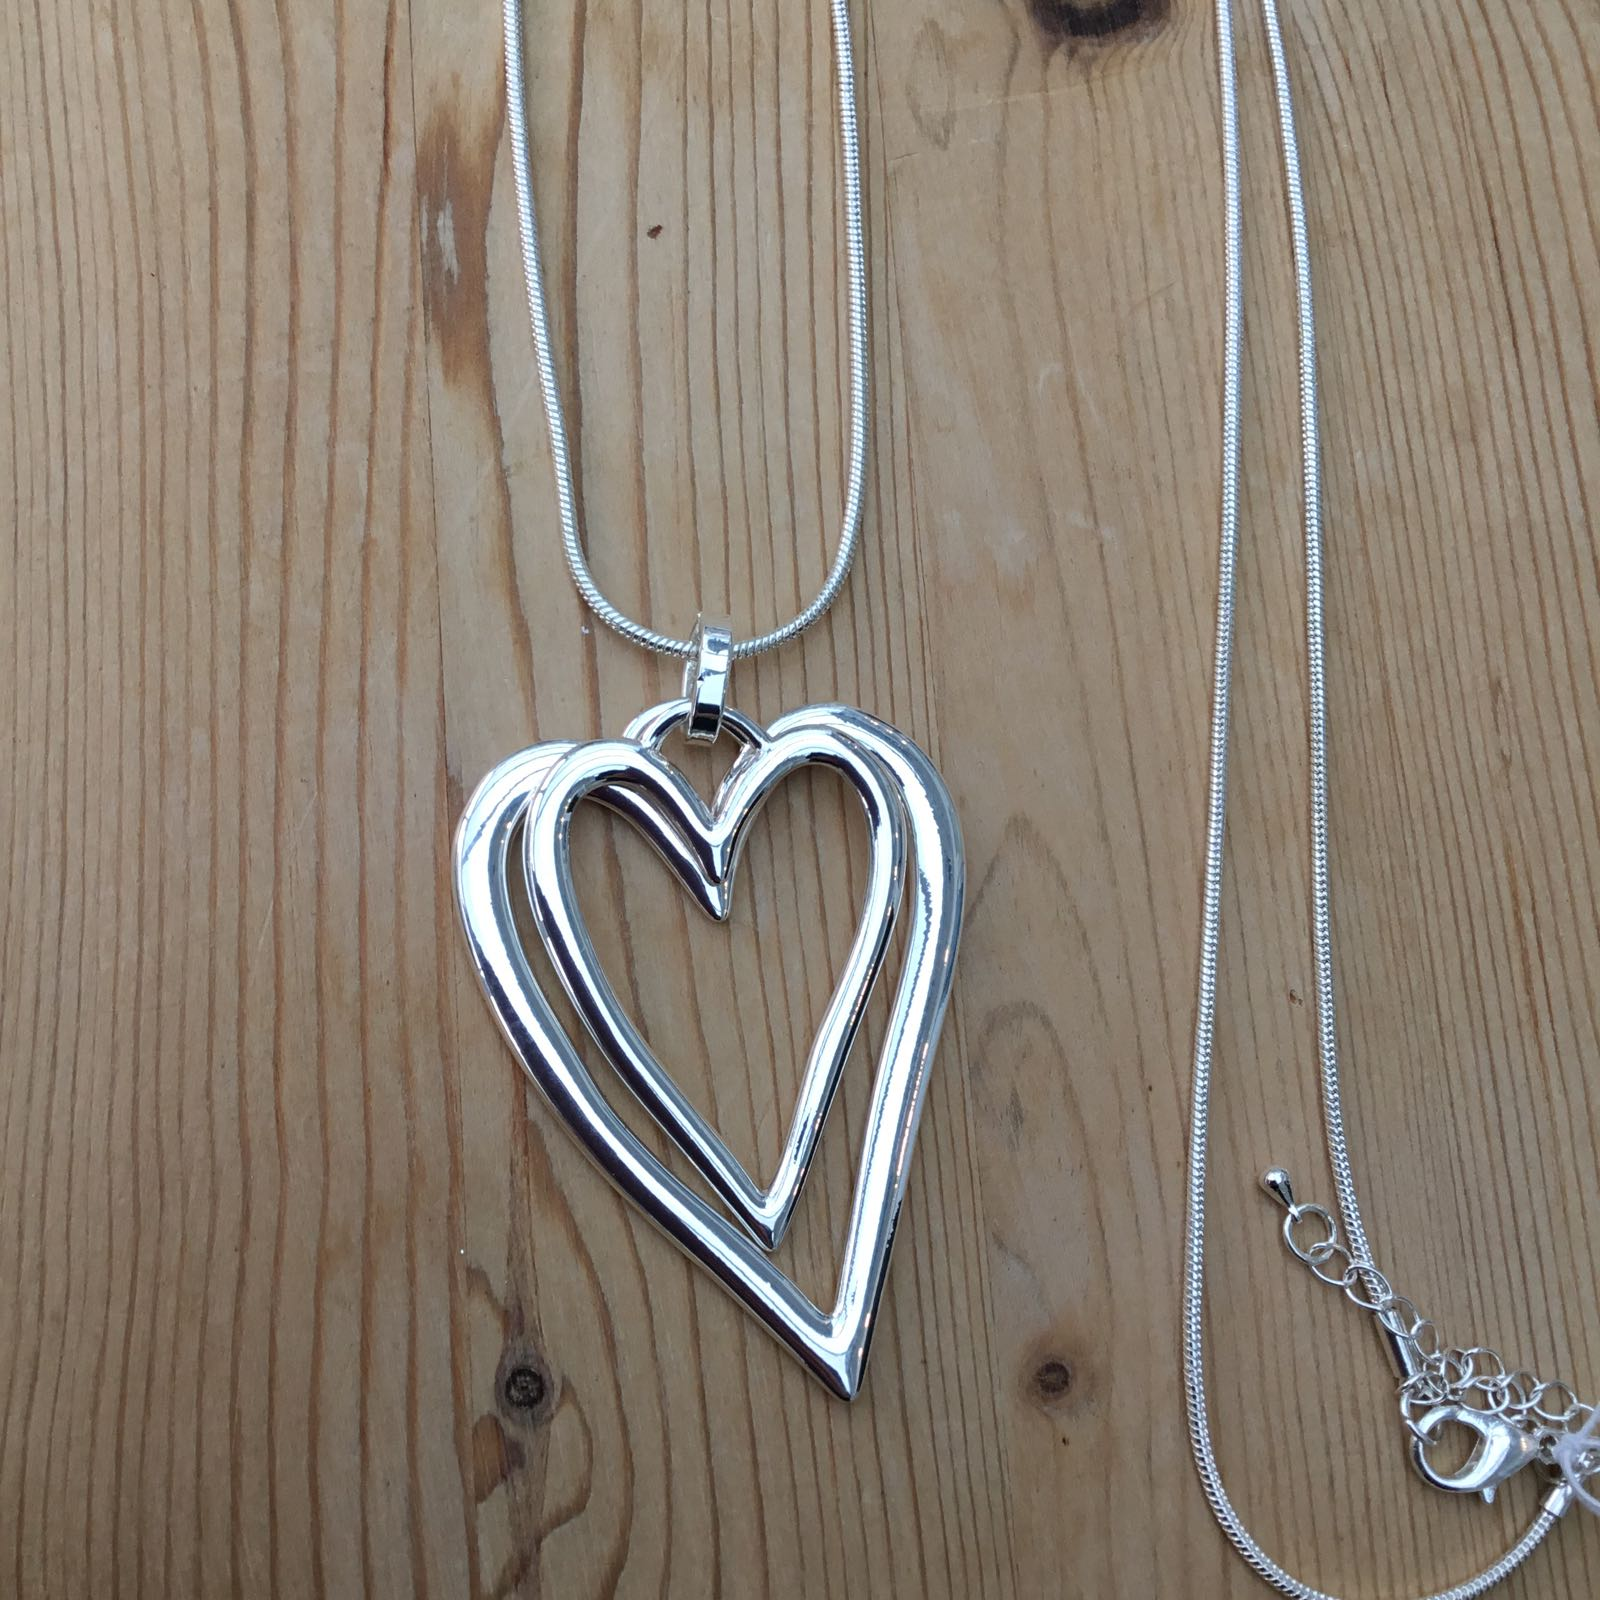 2 Hanging Hearts Necklace - Silver